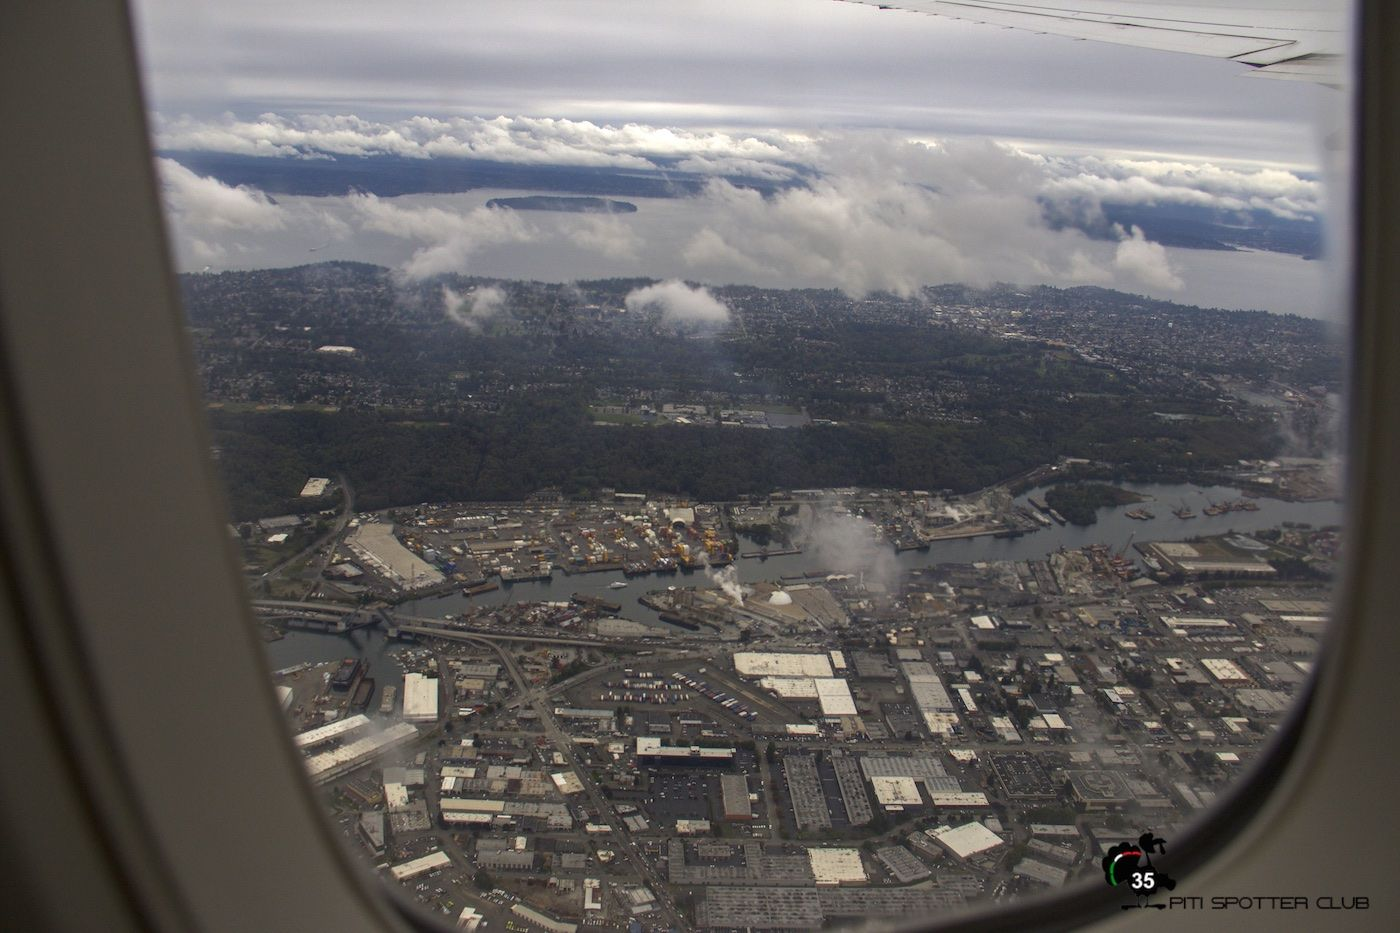 Climbing over Seattle